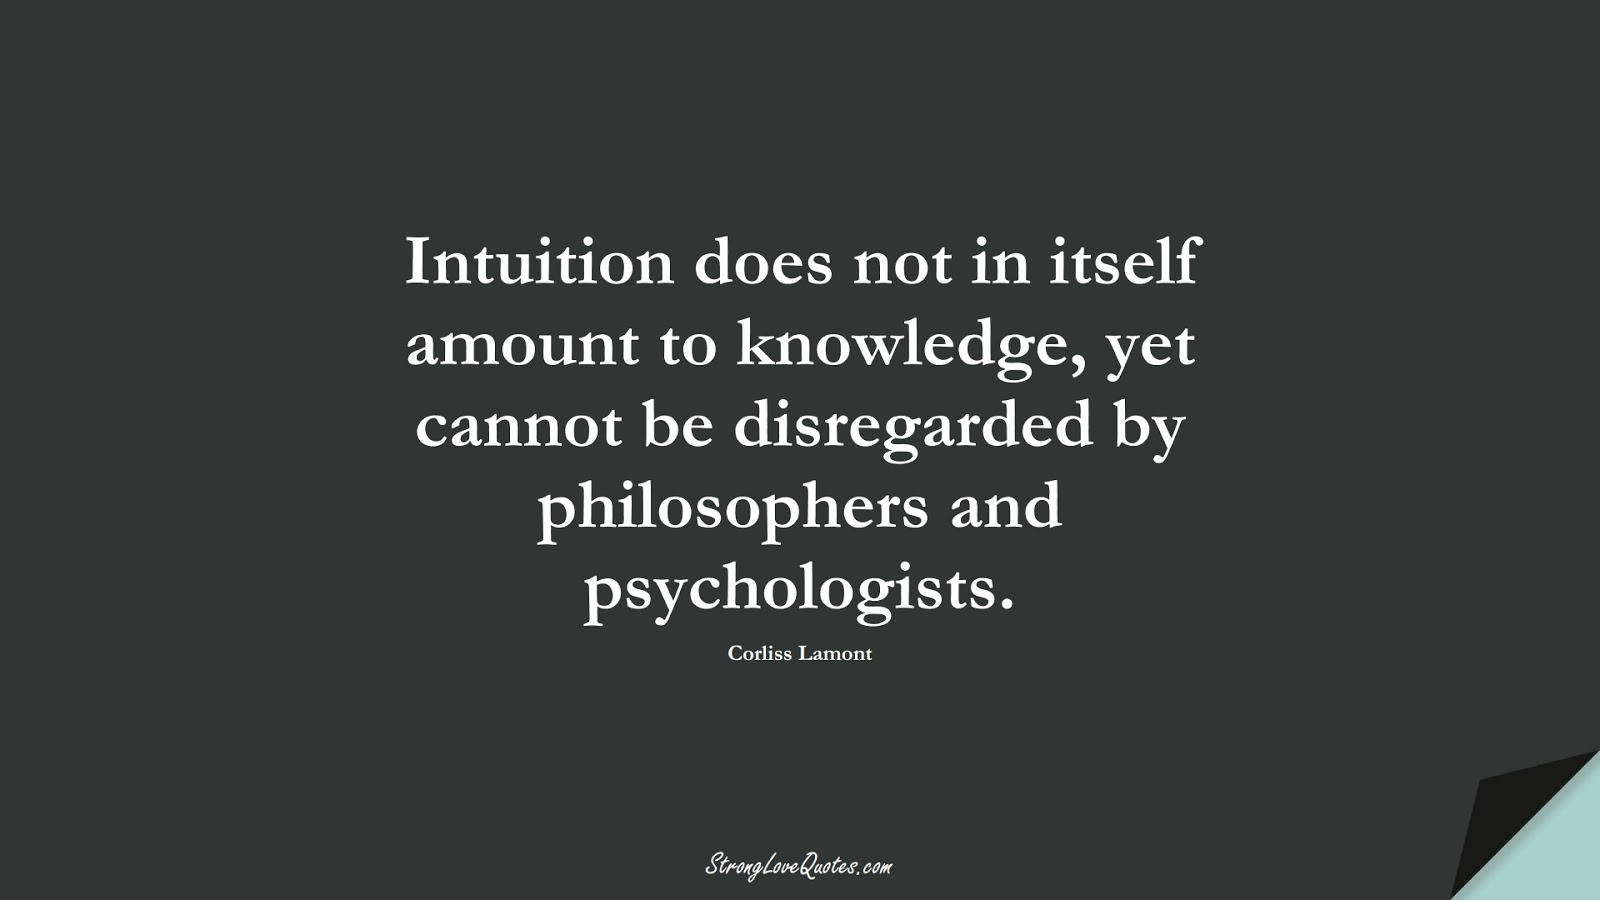 Intuition does not in itself amount to knowledge, yet cannot be disregarded by philosophers and psychologists. (Corliss Lamont);  #KnowledgeQuotes